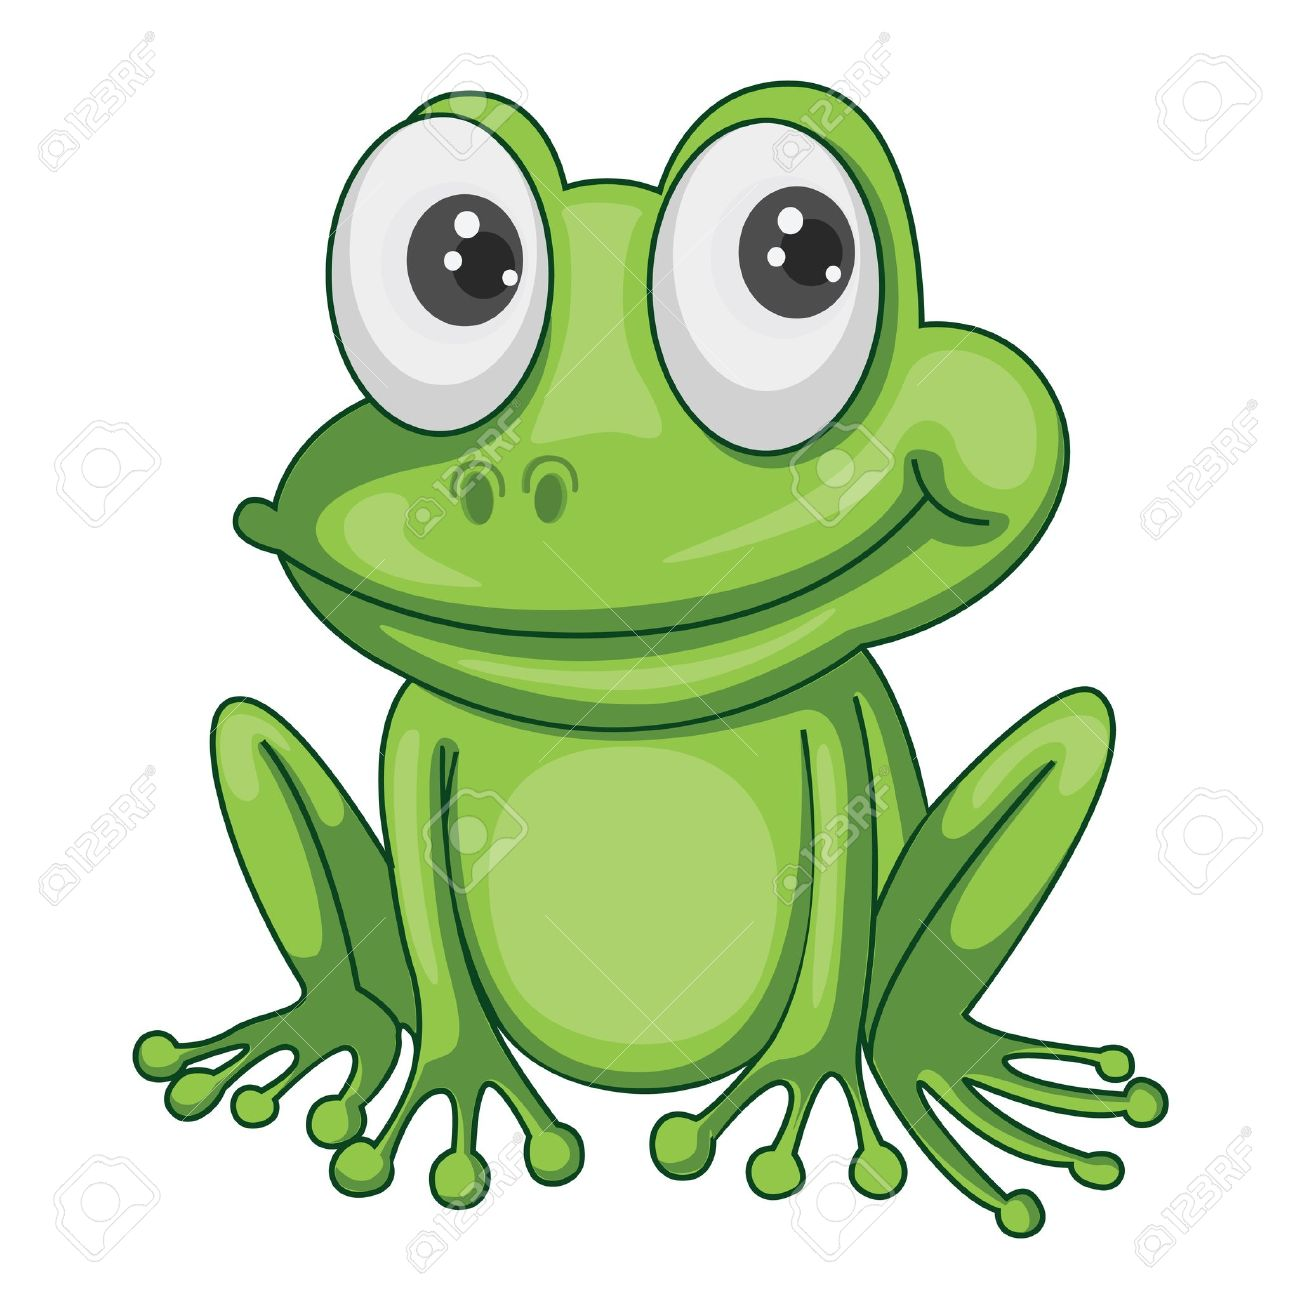 illustration of green frog on a white background royalty free